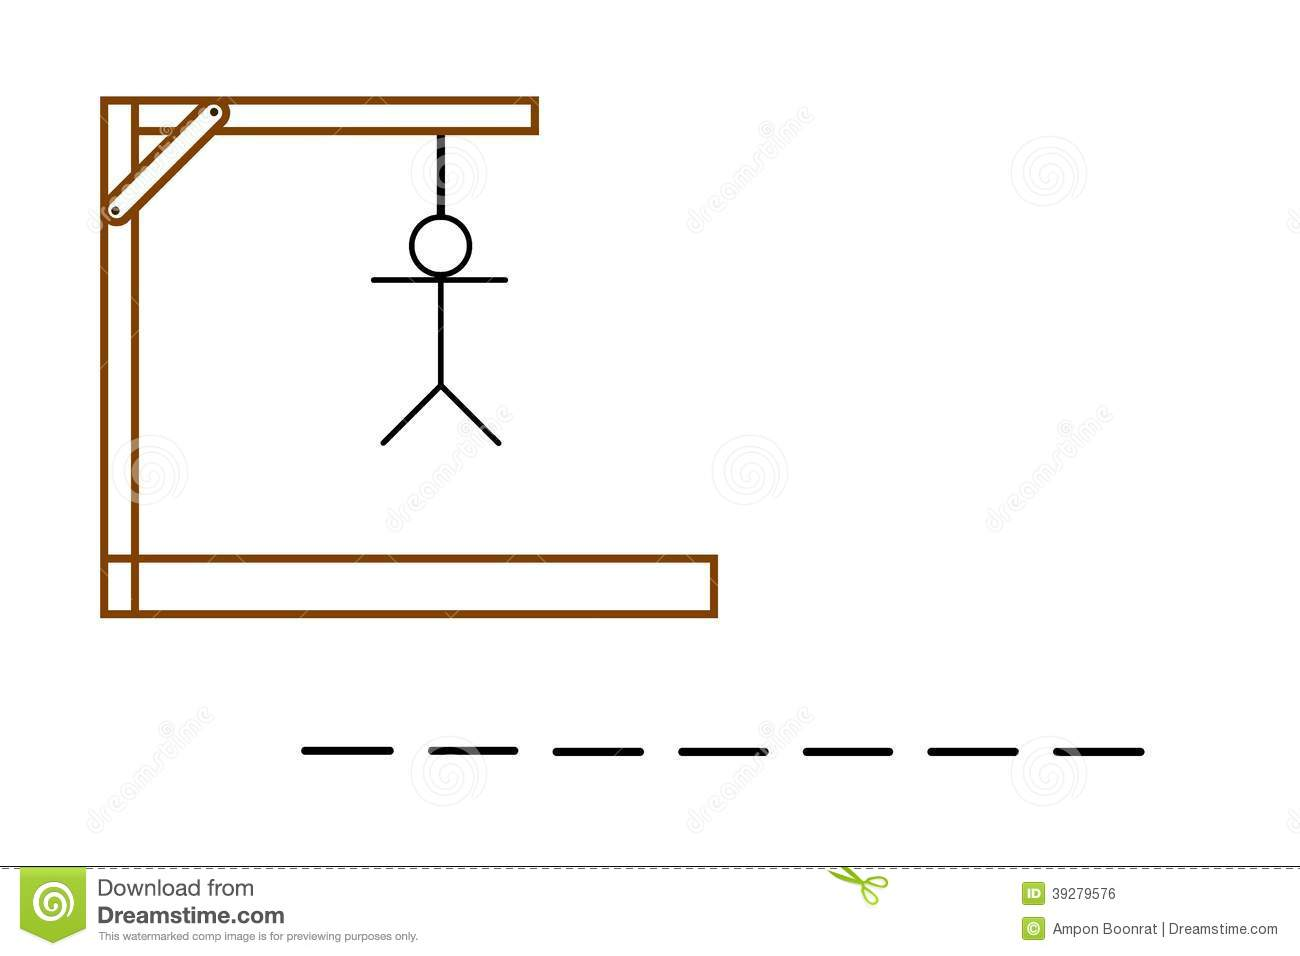 Hangman Game On White Background Stock Illustration - Image: 39279576